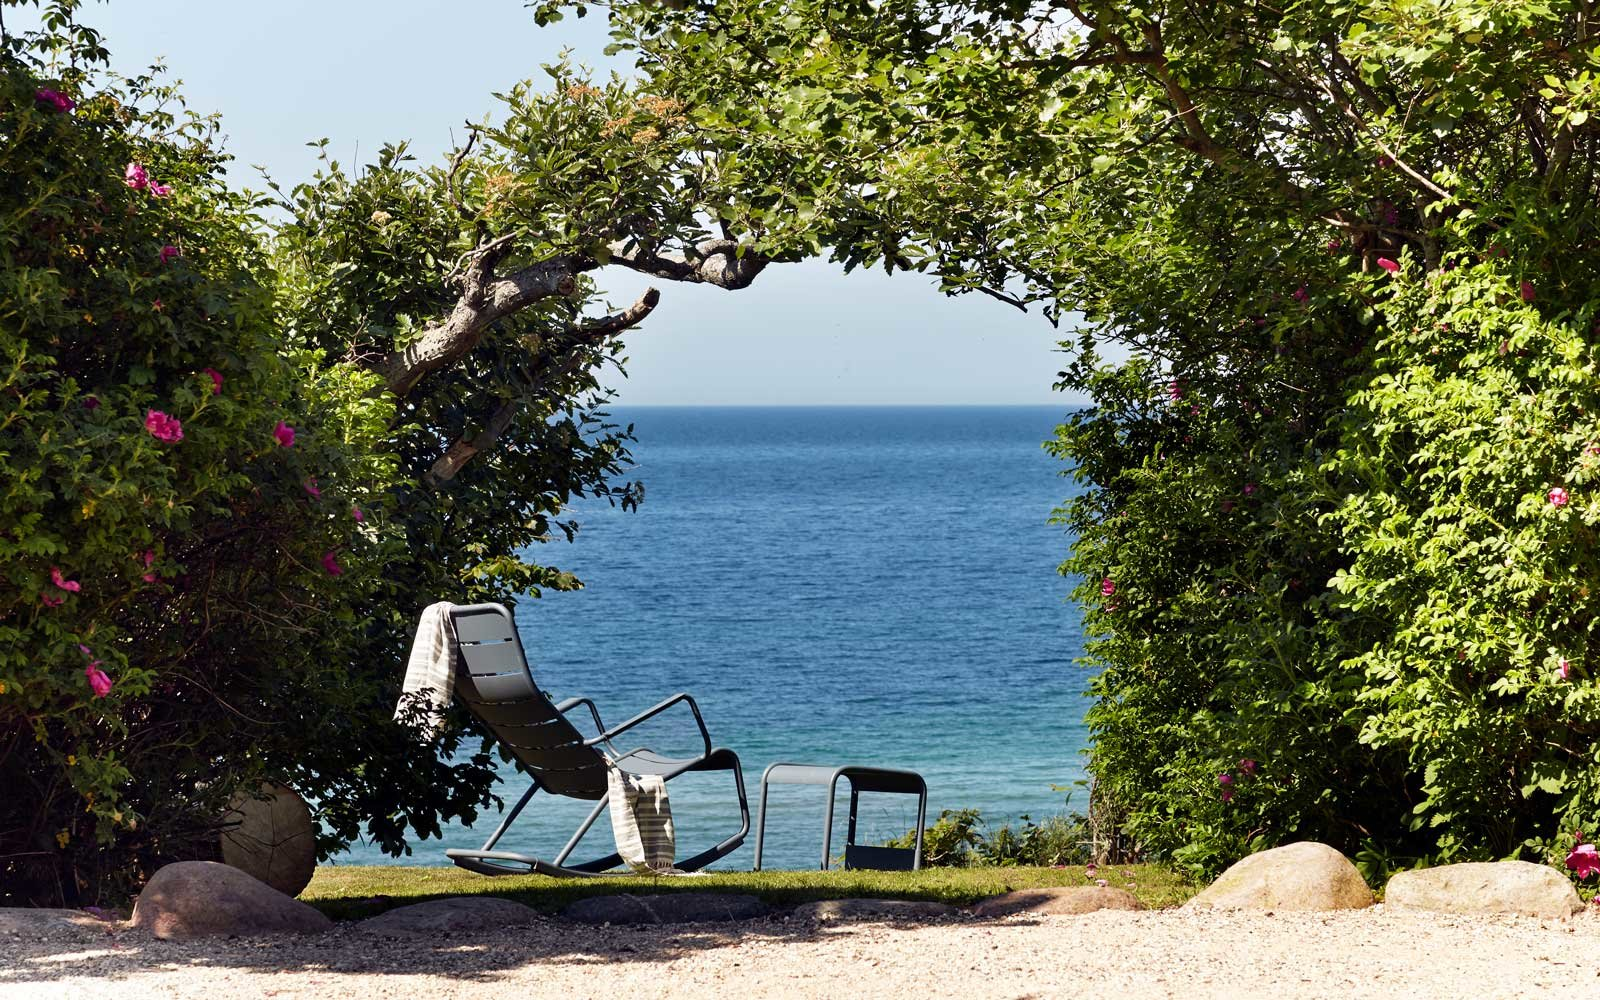 The Kattegat Sea, as seen from the Helenekilde Badehotel, in Tisvildeleje, Denmark.